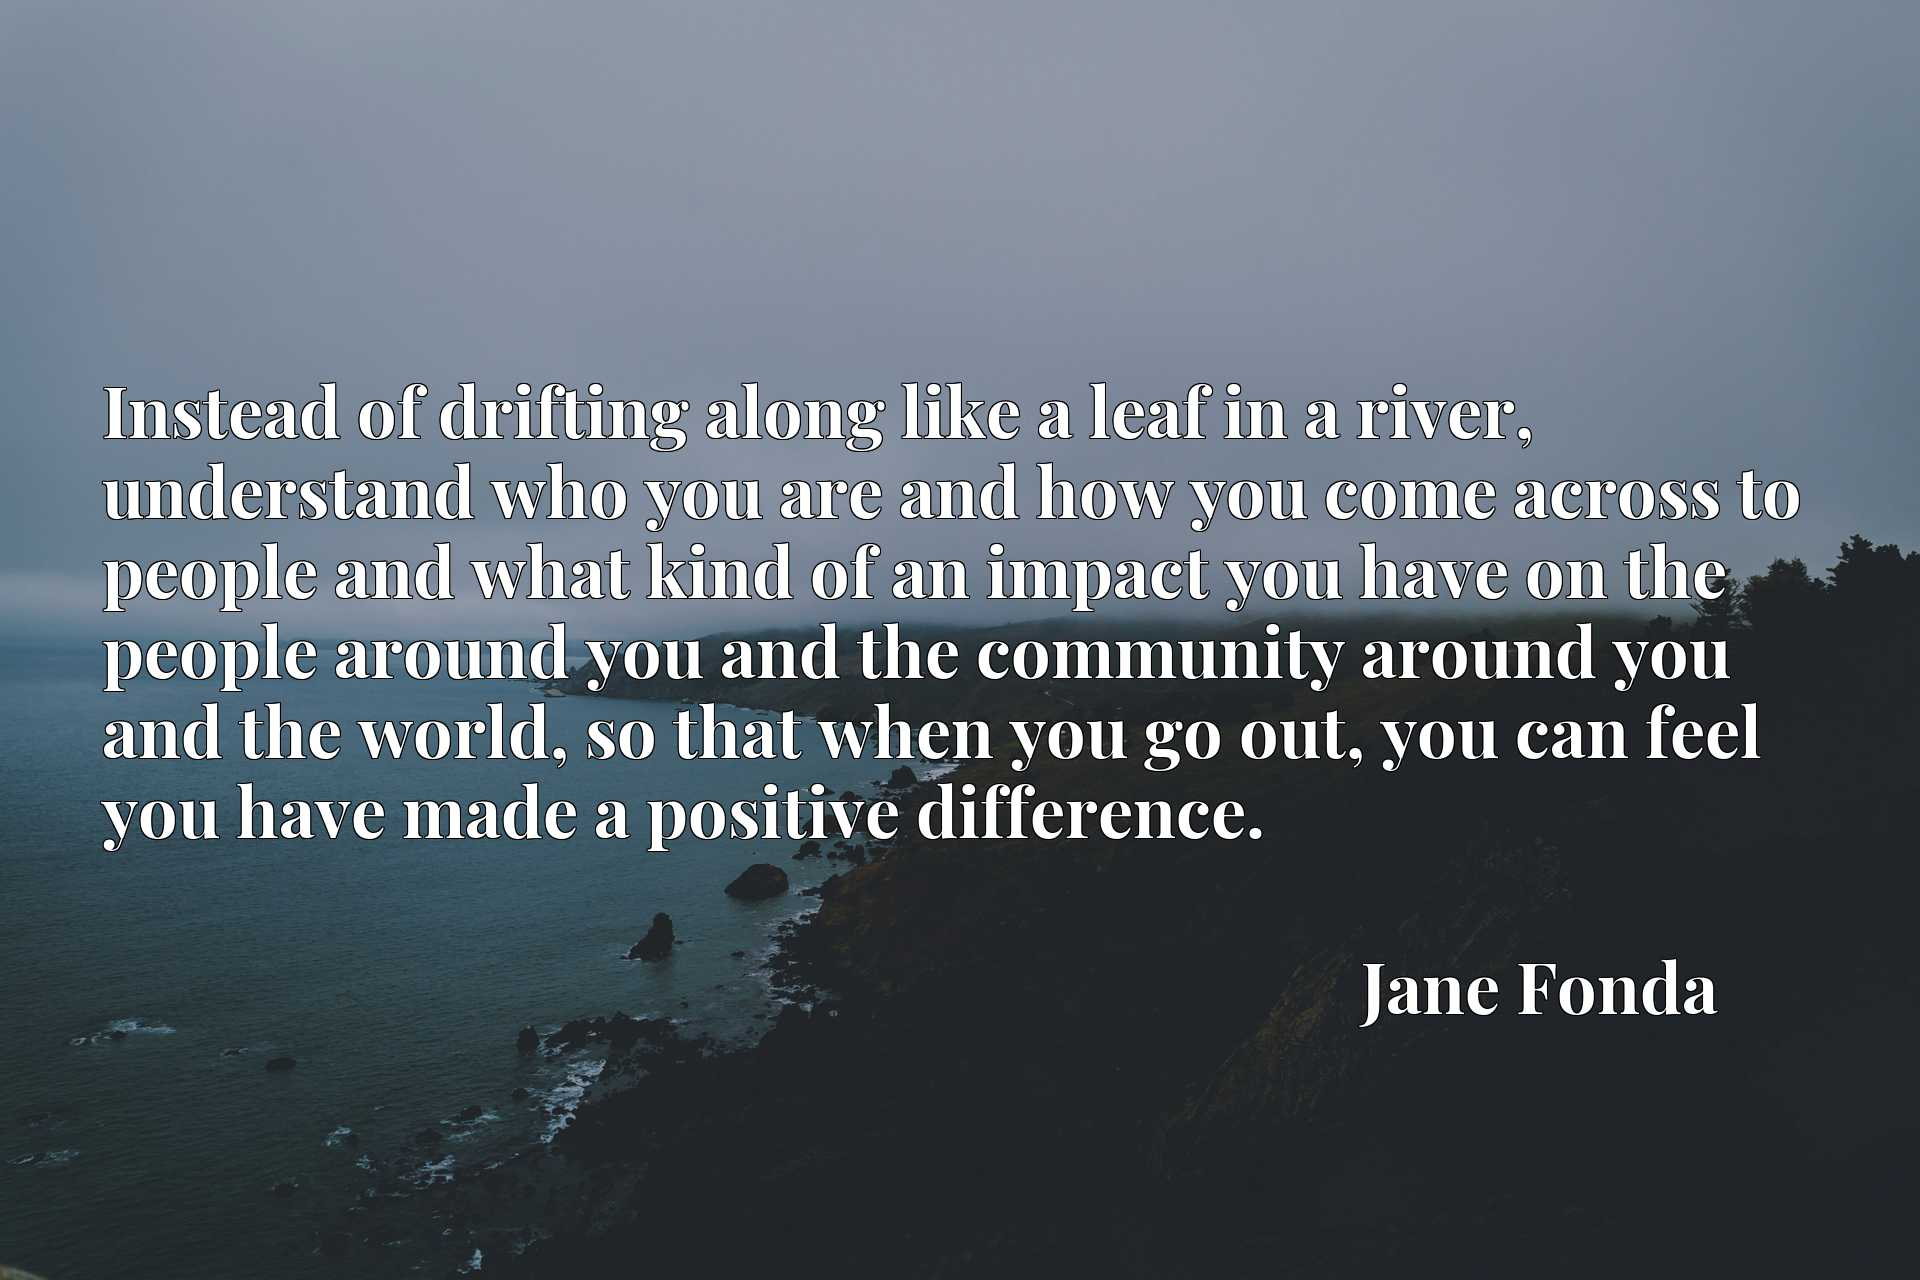 Instead of drifting along like a leaf in a river, understand who you are and how you come across to people and what kind of an impact you have on the people around you and the community around you and the world, so that when you go out, you can feel you have made a positive difference.